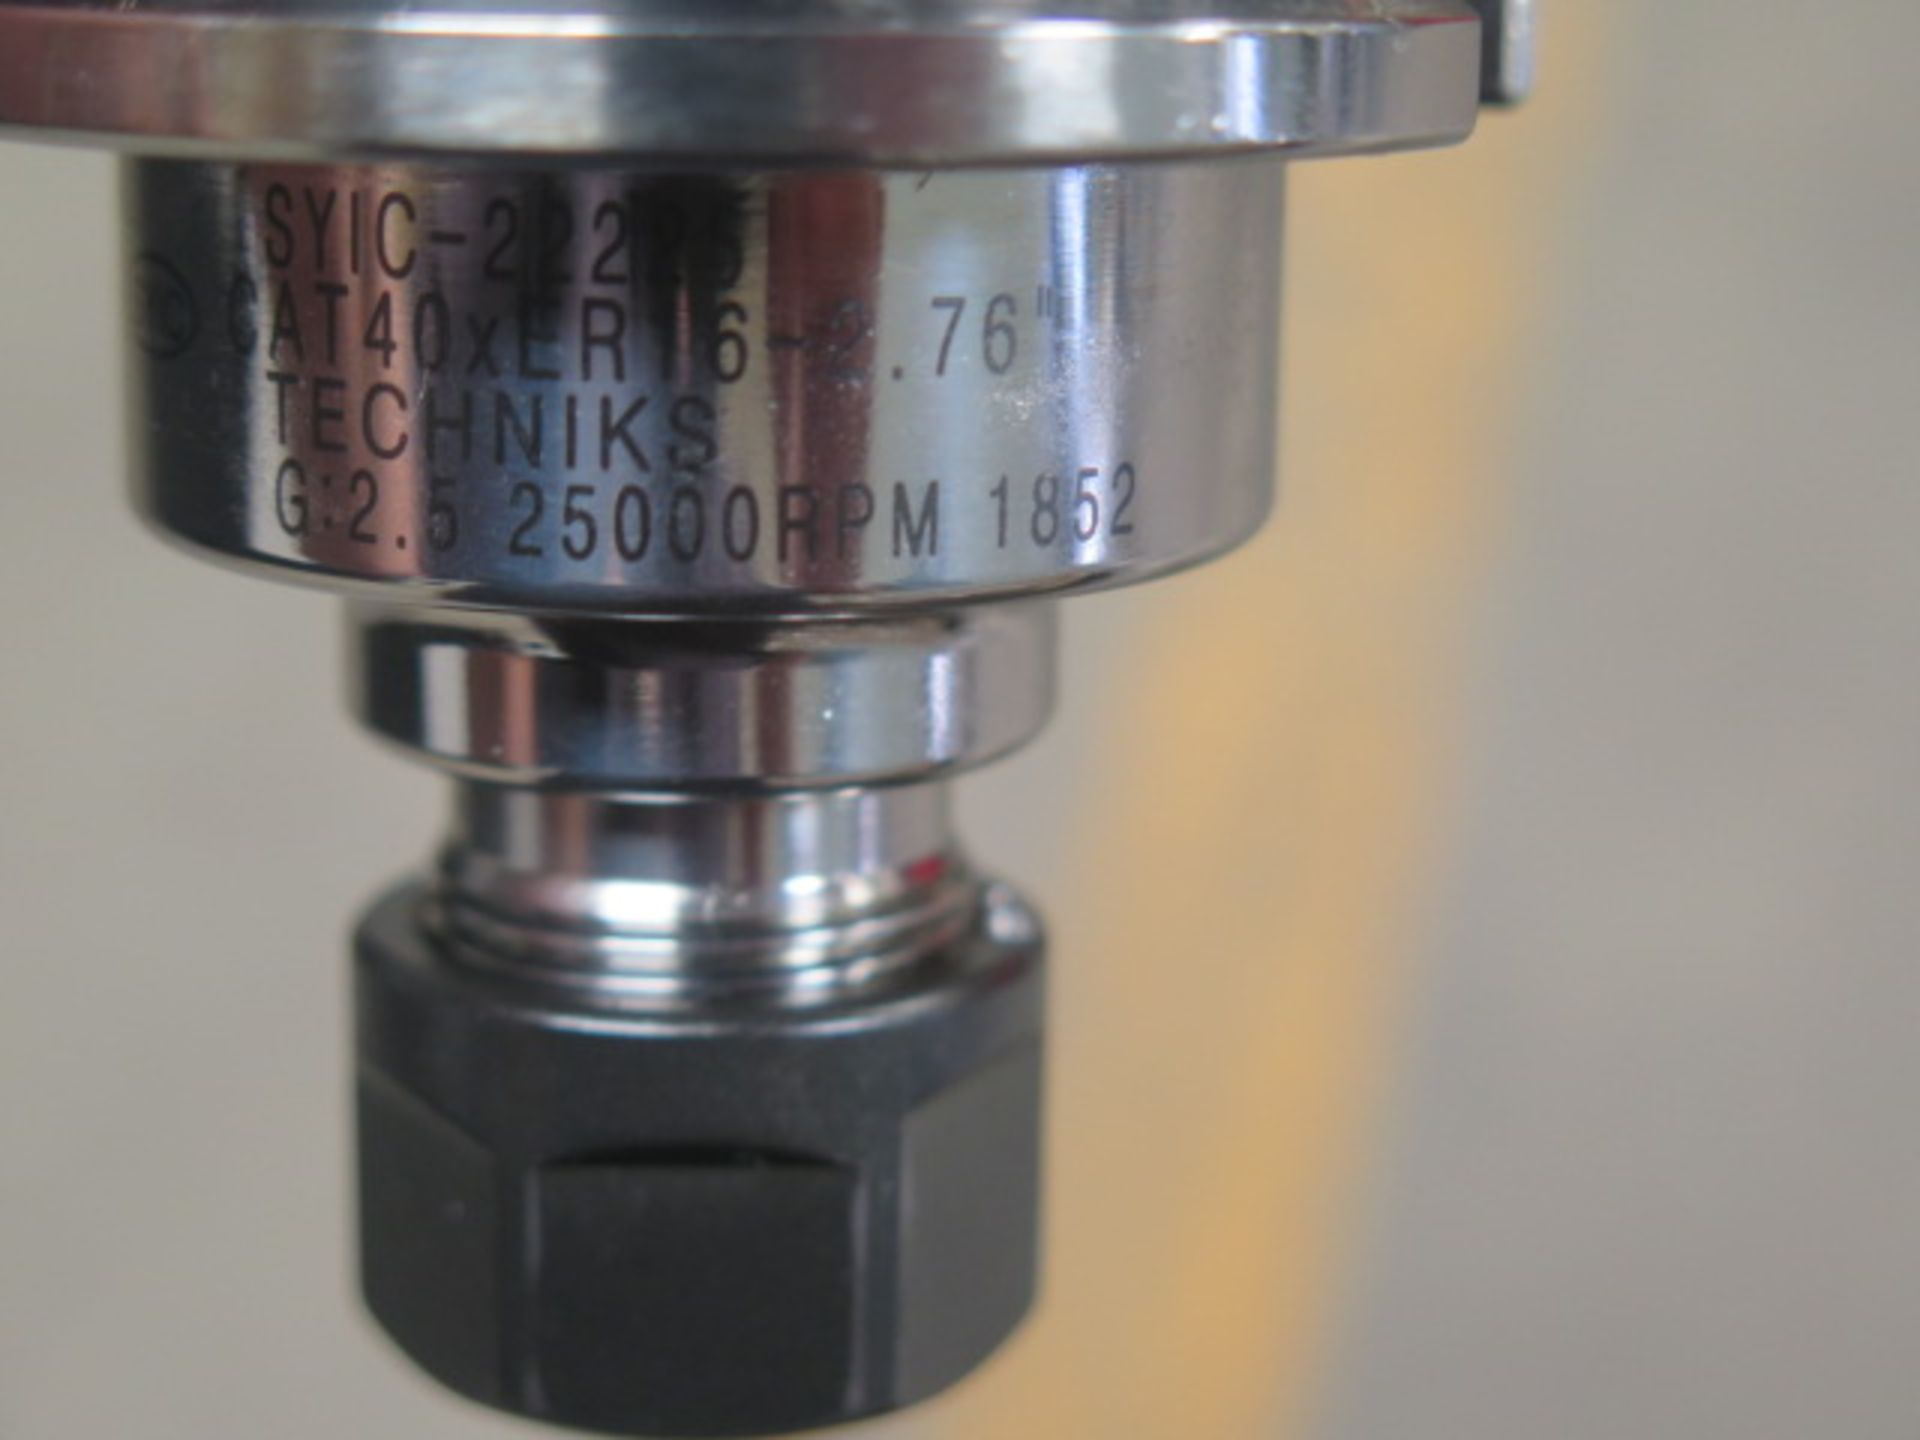 CAT-40 Taper 25,000 RPM Balanced ER16 Collet Chucks (10) (SOLD AS-IS - NO WARRANTY) - Image 5 of 5